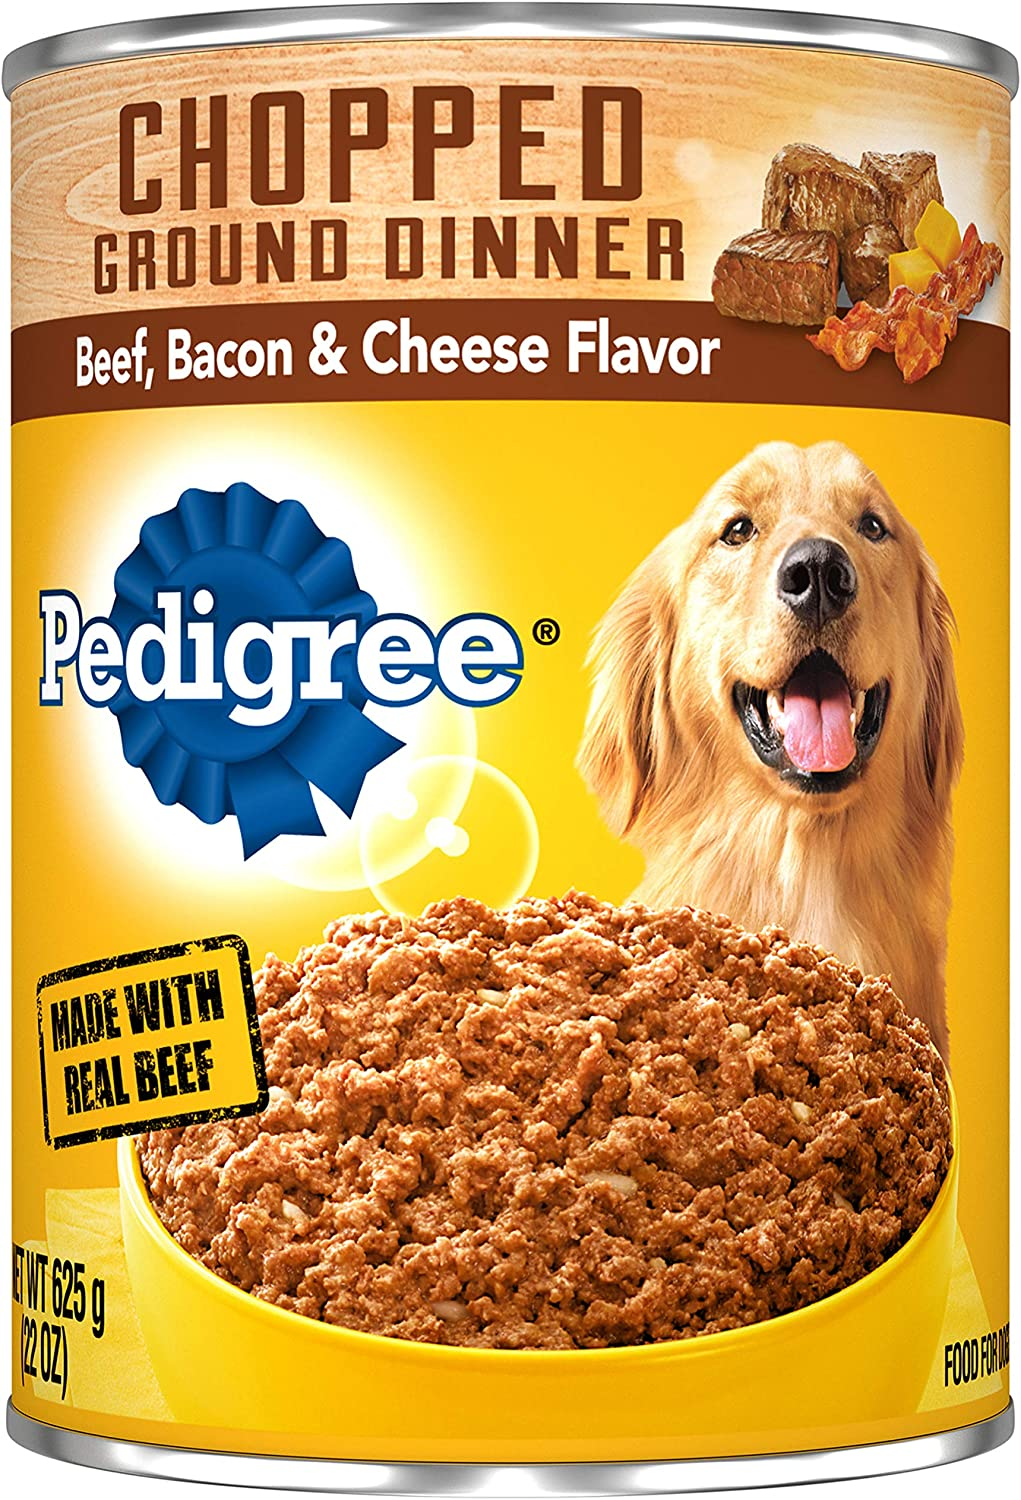 Best Canned Dog Food >> Pedigree Chopped Ground Dinner Wet Dog Food 22 Oz Cans Pack Of 12